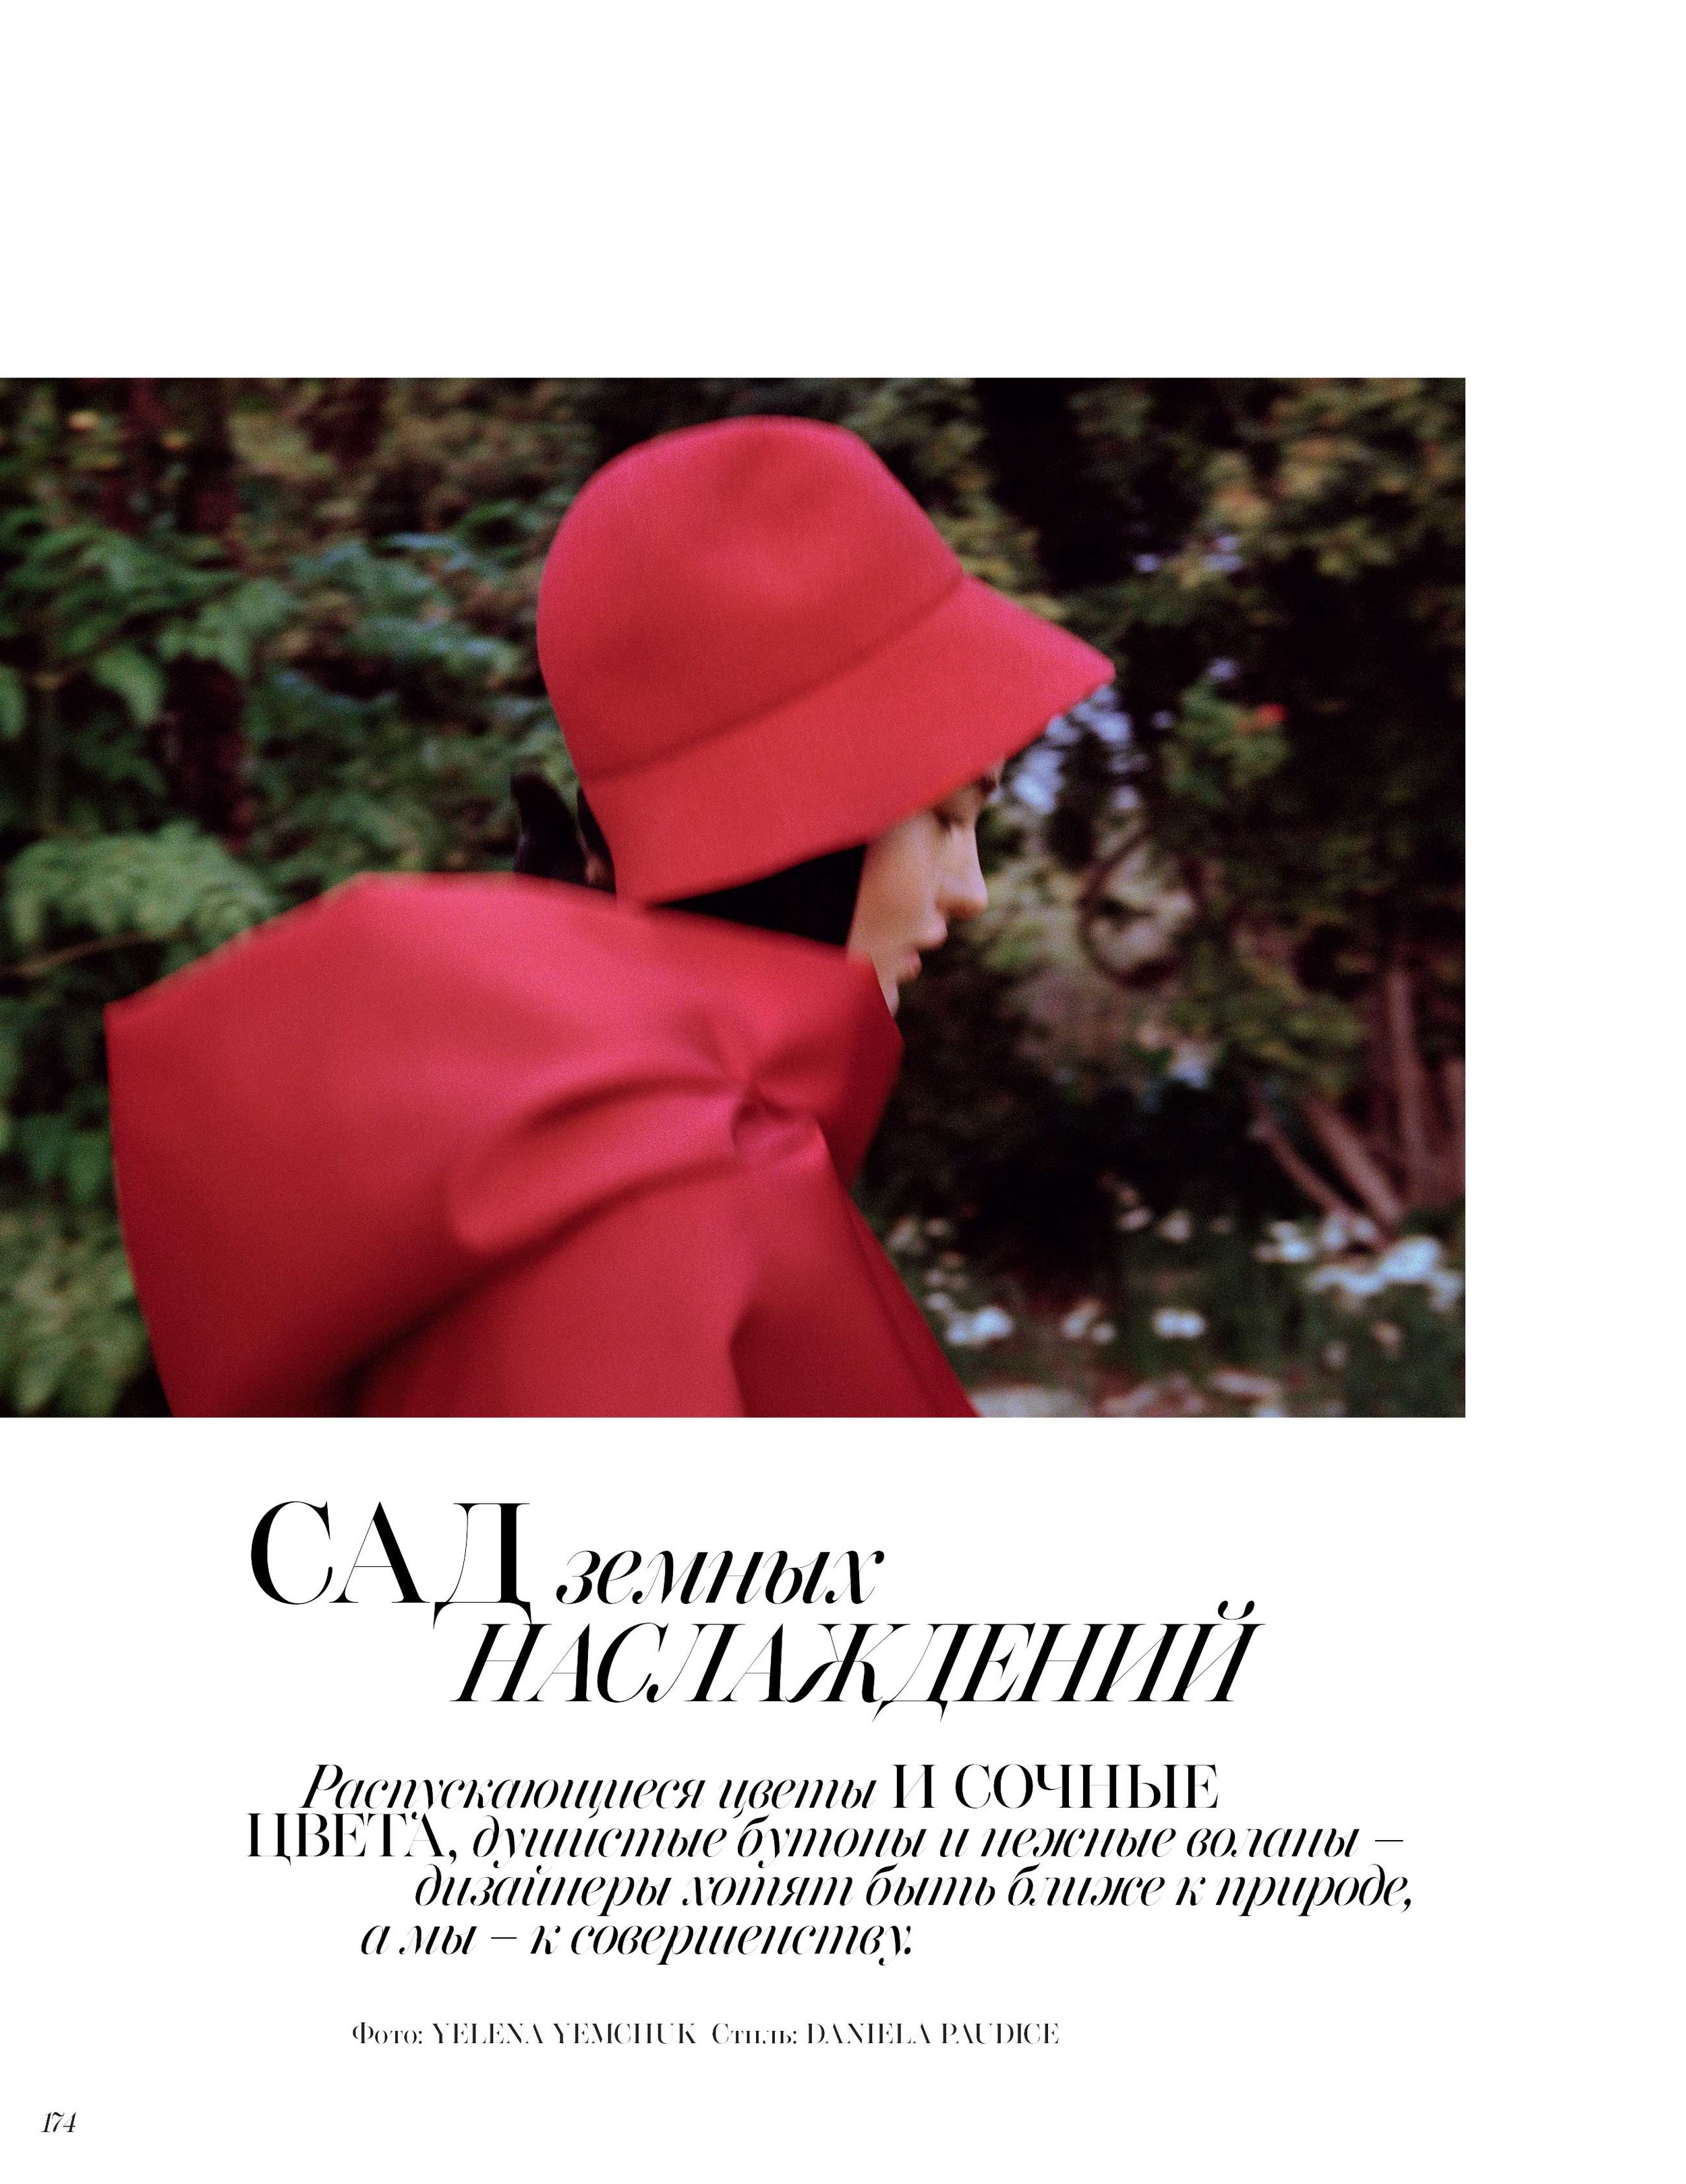 PHOTOGRAPHED BY YELENA YEMCHUK FOR VOGUE RUSSIA, APRIL 2019. IMAGES COURTESY CONDÉ NAST.